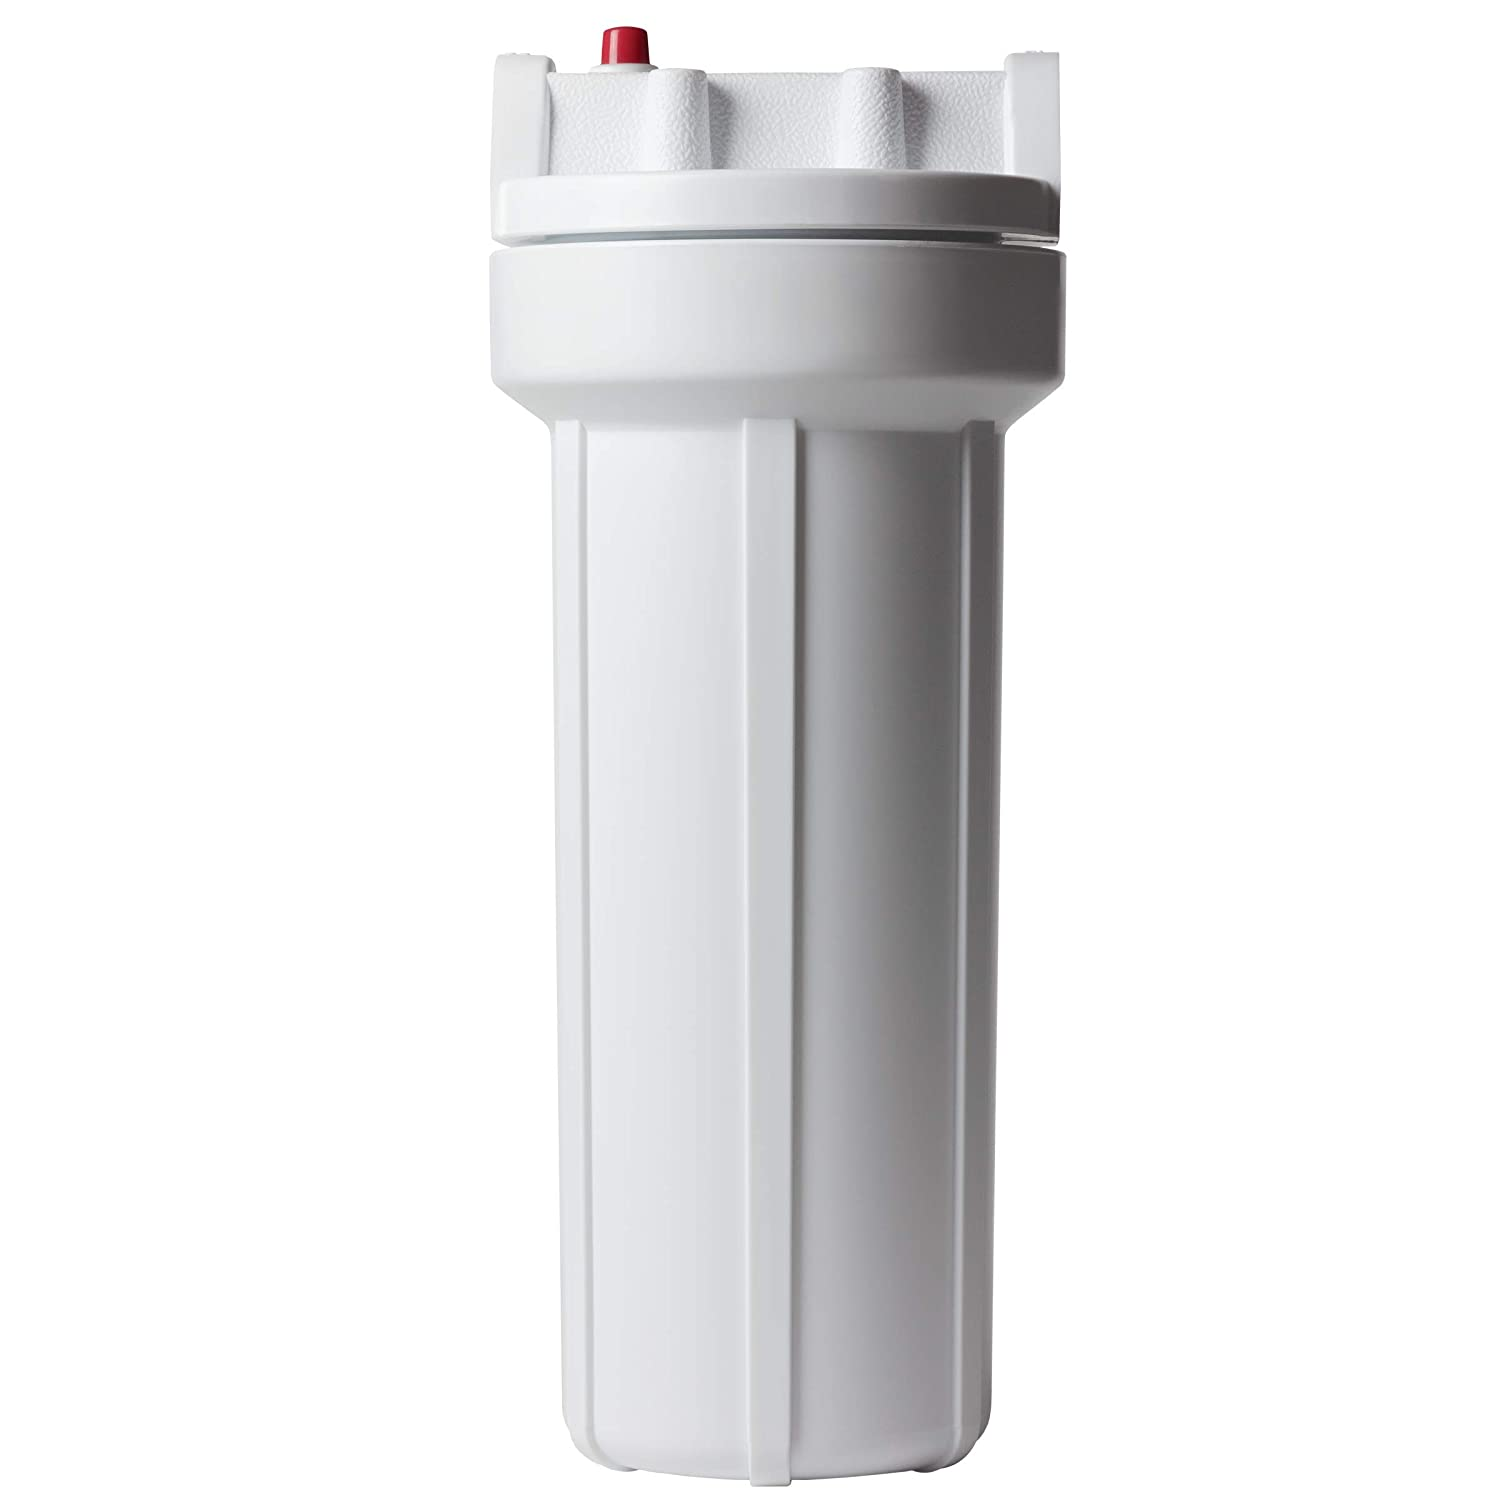 AO Smith Single-Stage Under Sink Water Carbon Filter System